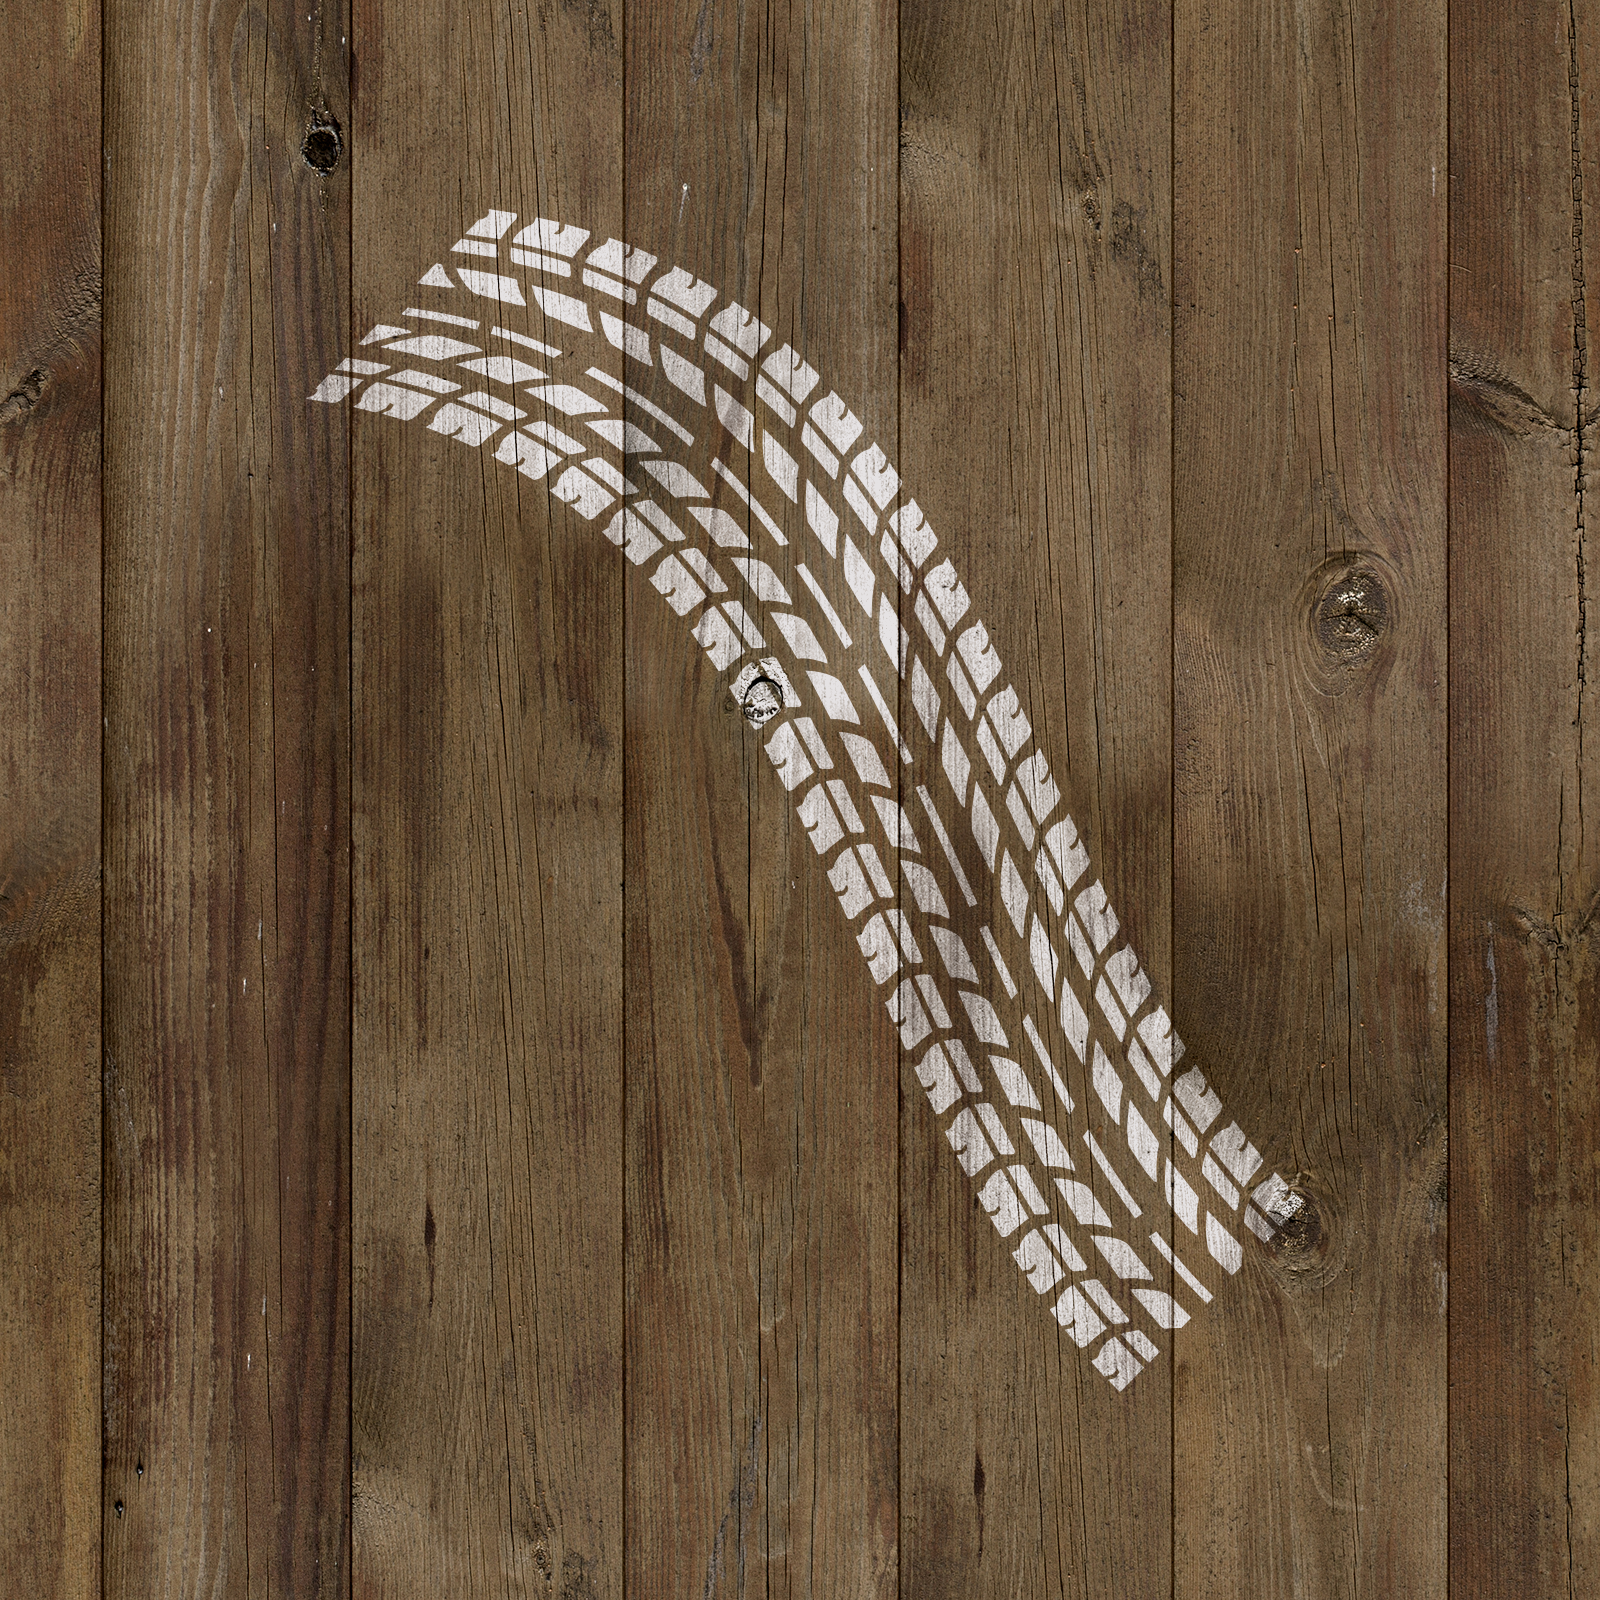 Tire Tracks Stencil - Reusable Stencils of Tire Tracks in Multiple Sizes